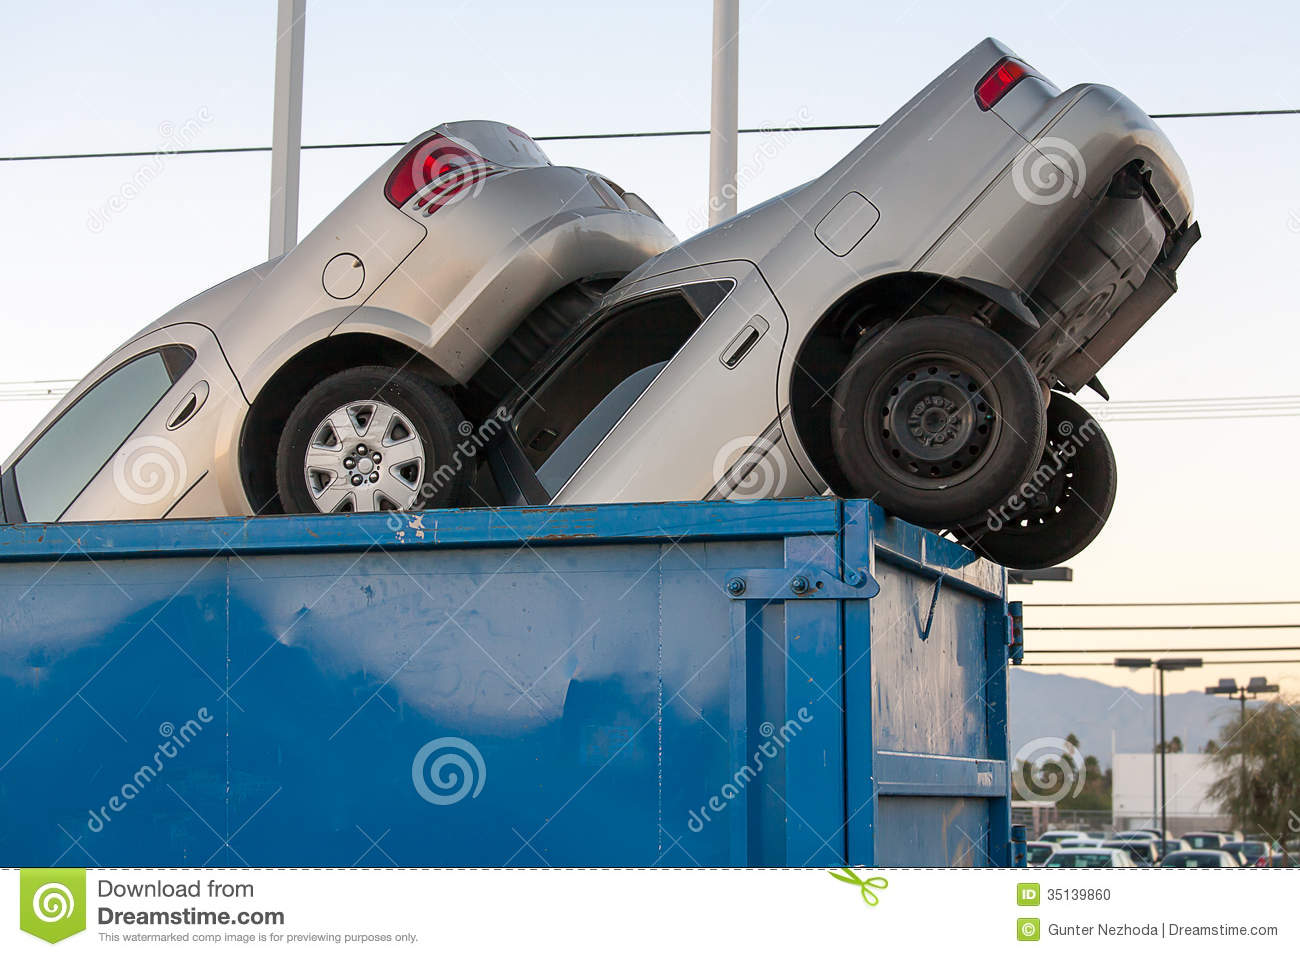 Cash For Clunkers >> Junk Cars In Dumpster Cash For Clunkers Stock Photo - Image: 35139860